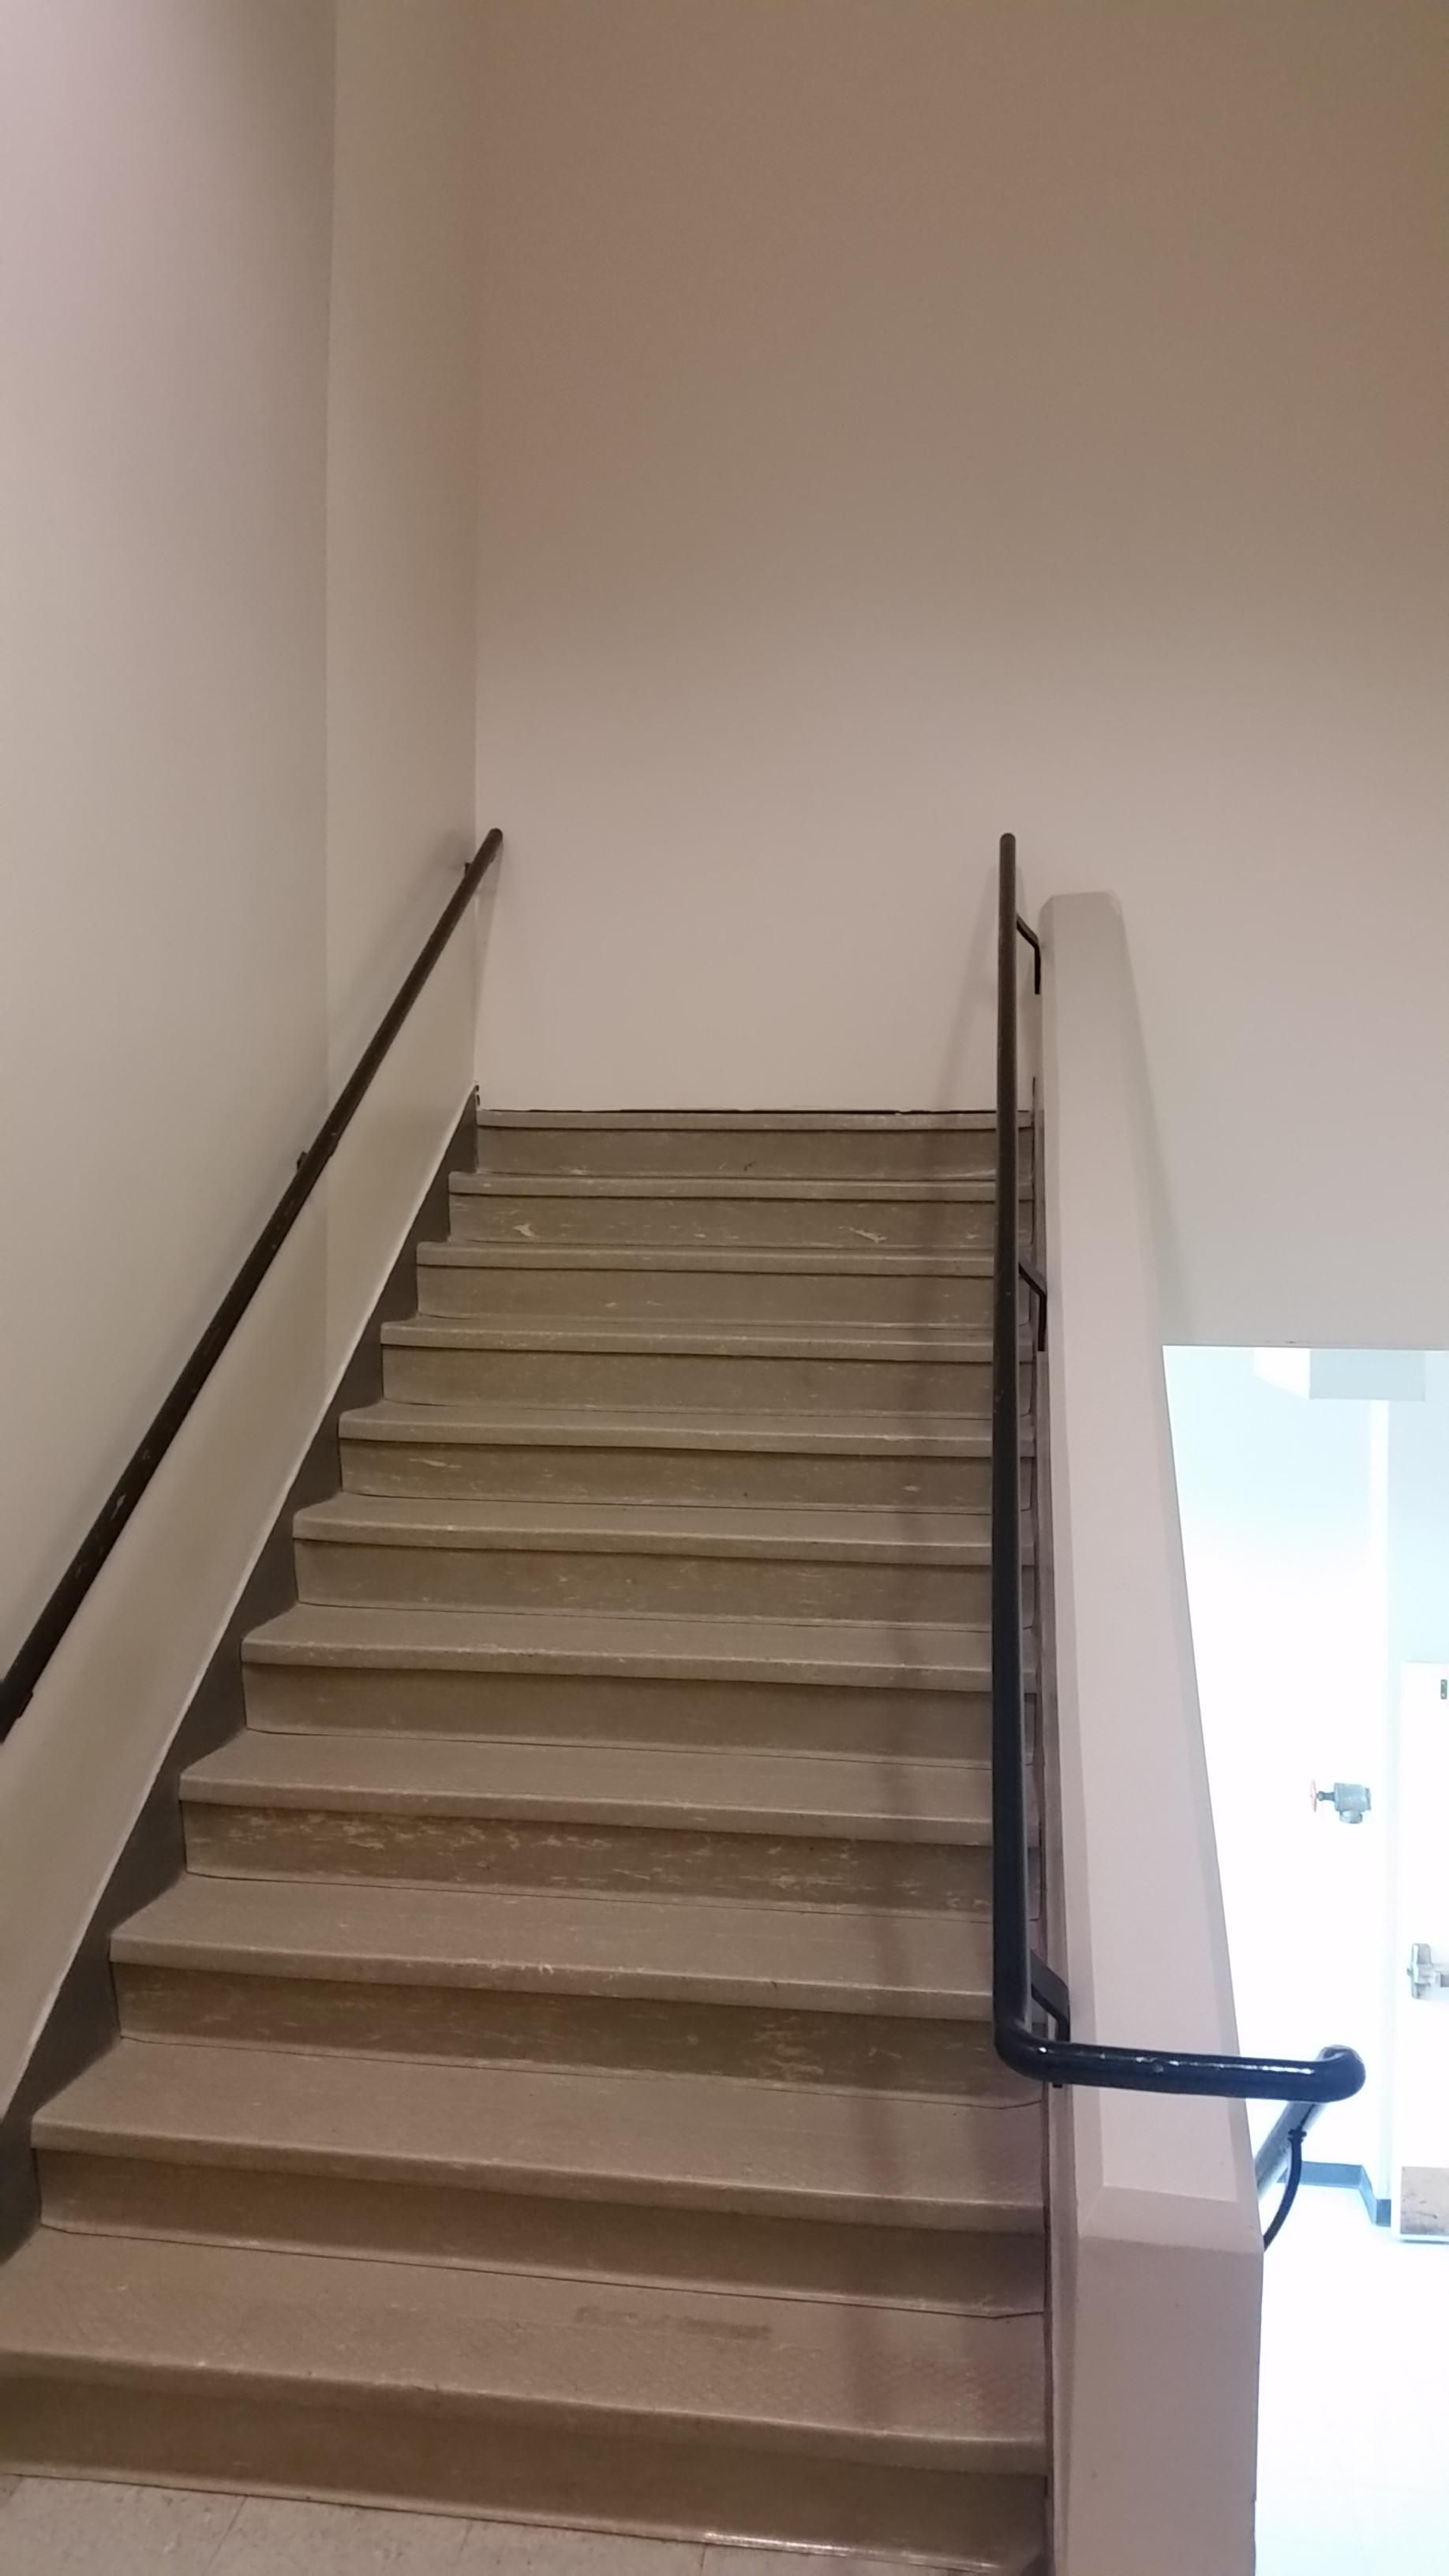 My school has a staircase to nowhere. | CrappyDesign | Pinterest ...